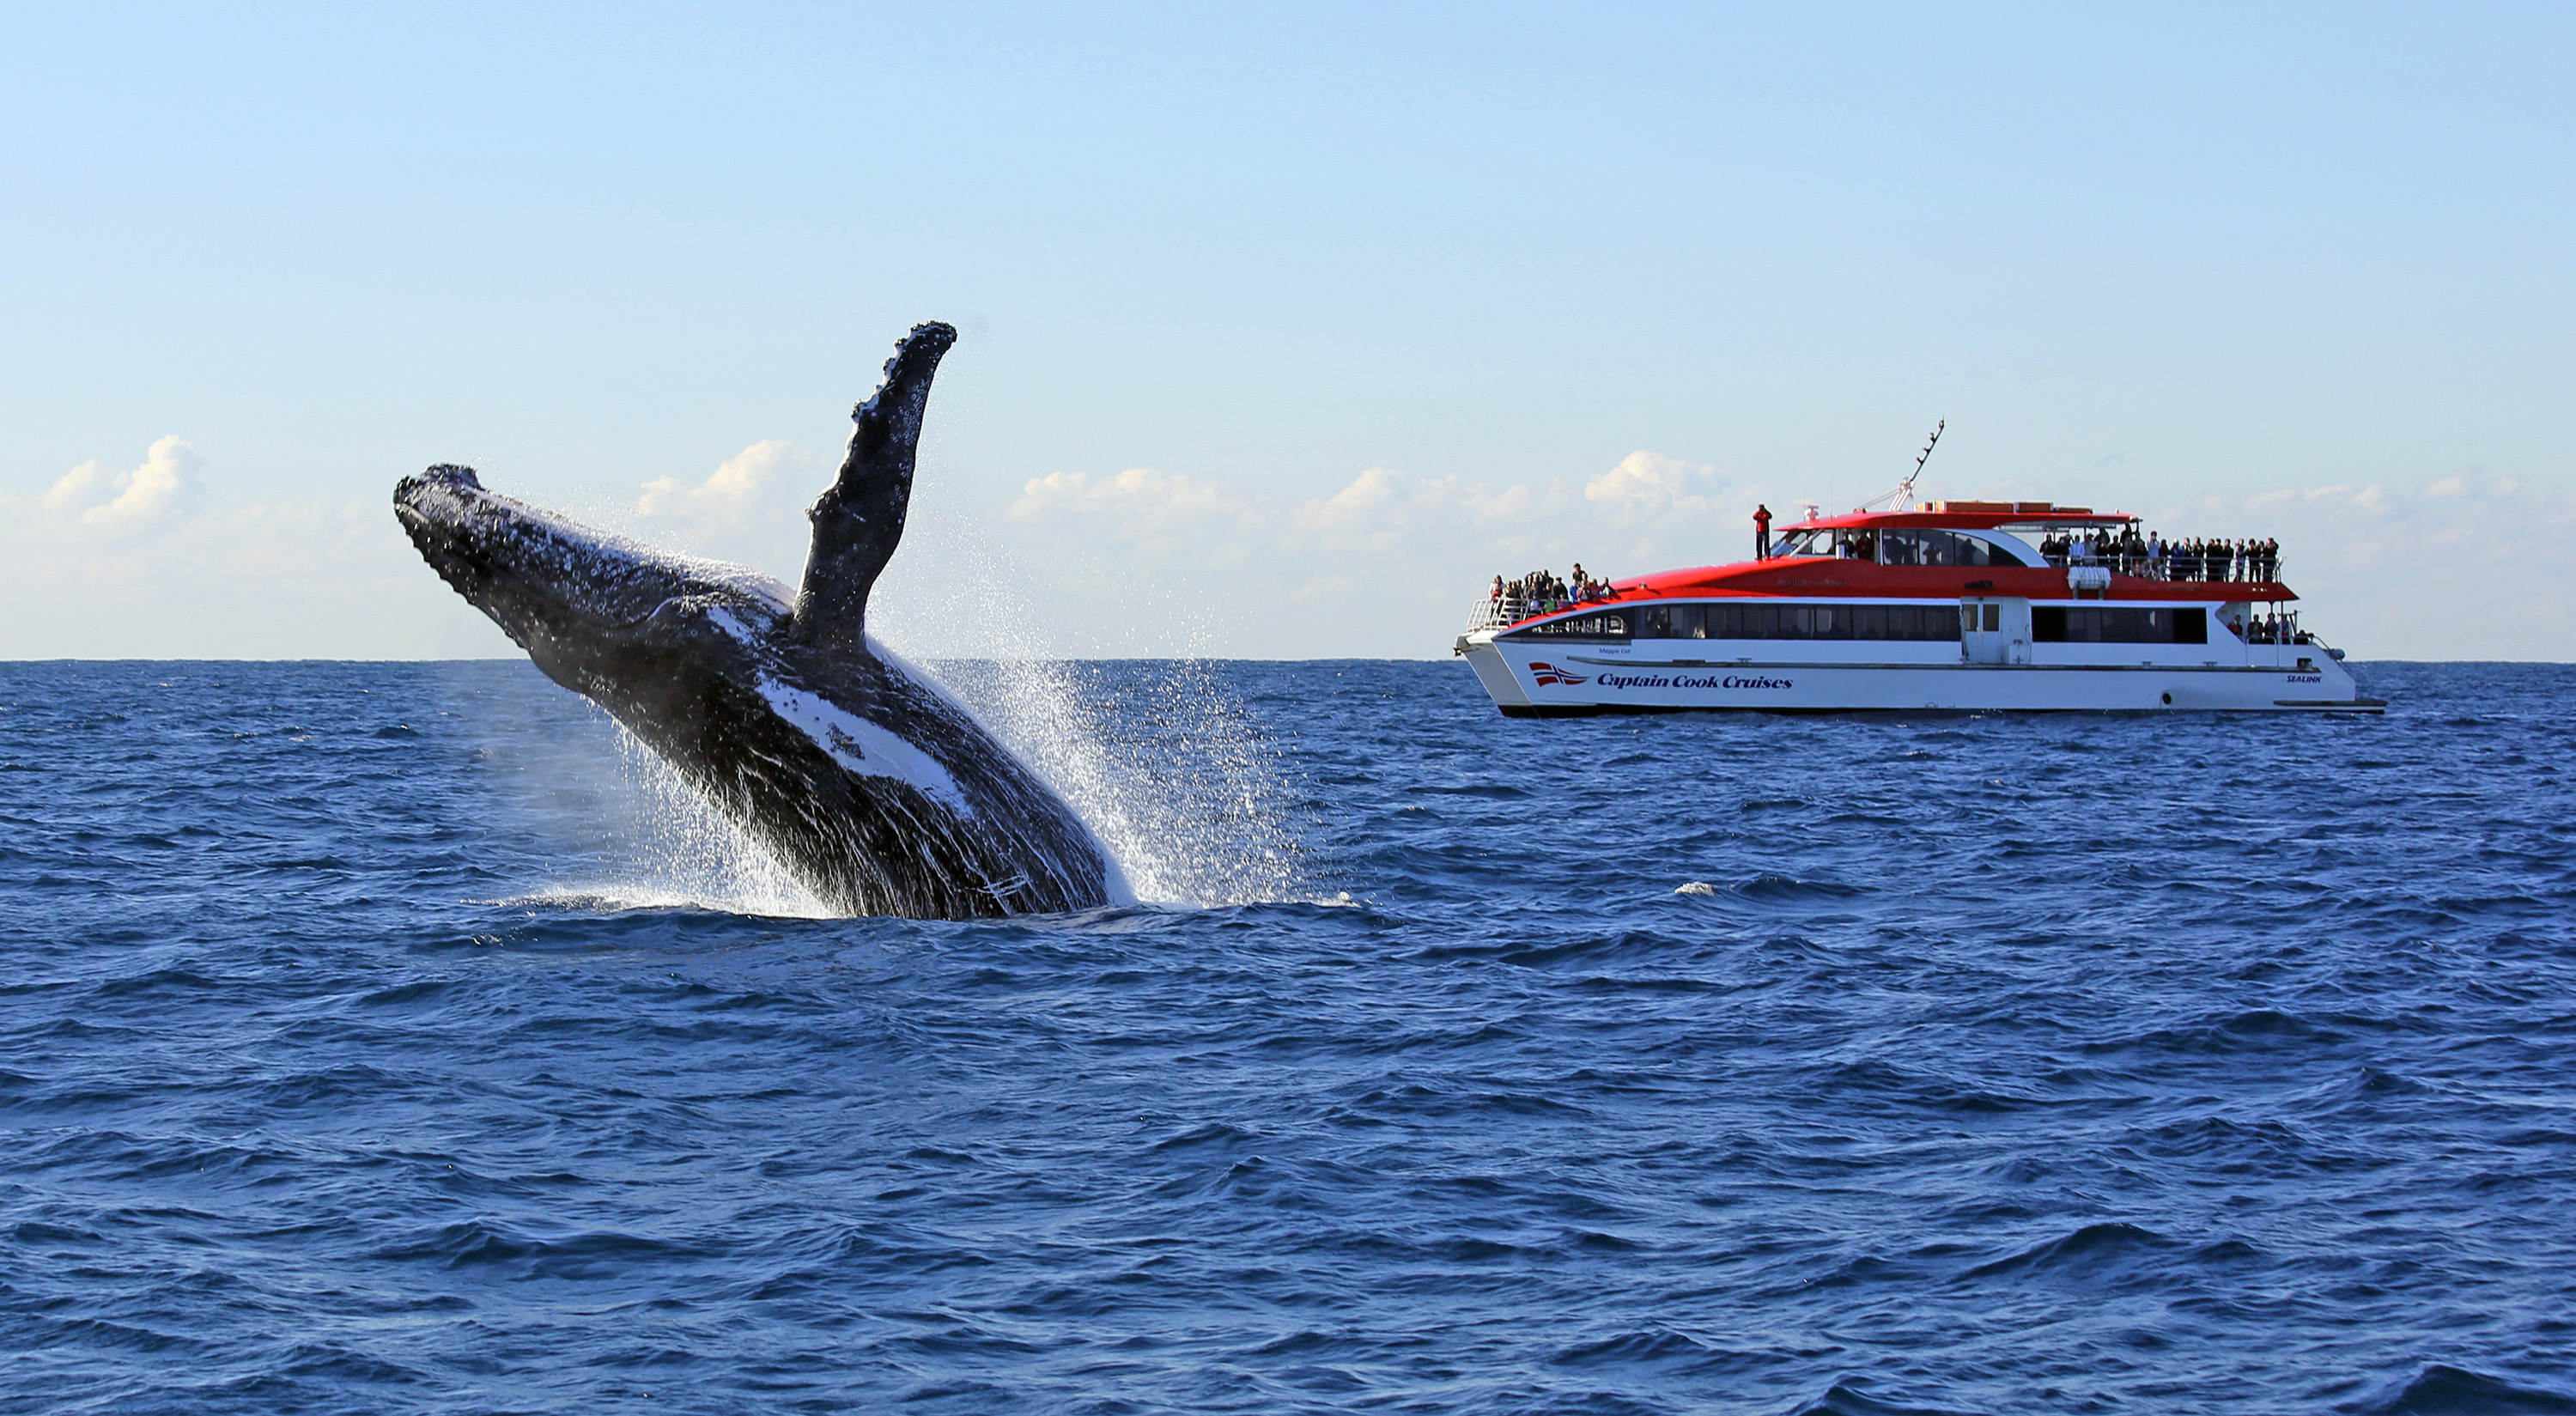 Whale jumps in front of cruise vessel.